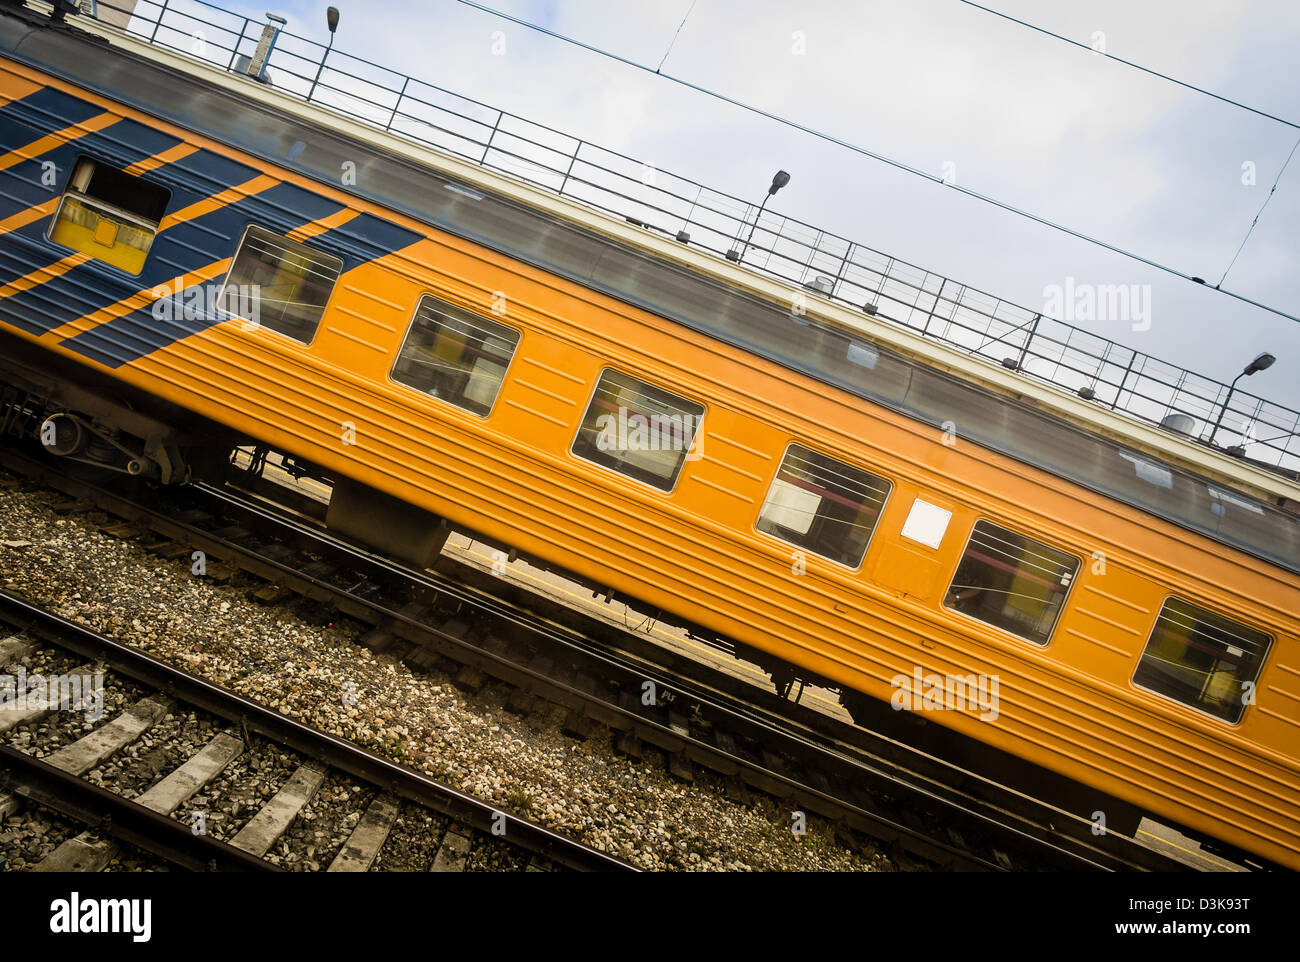 Moving passenger car of a train on a railway station - Stock Image